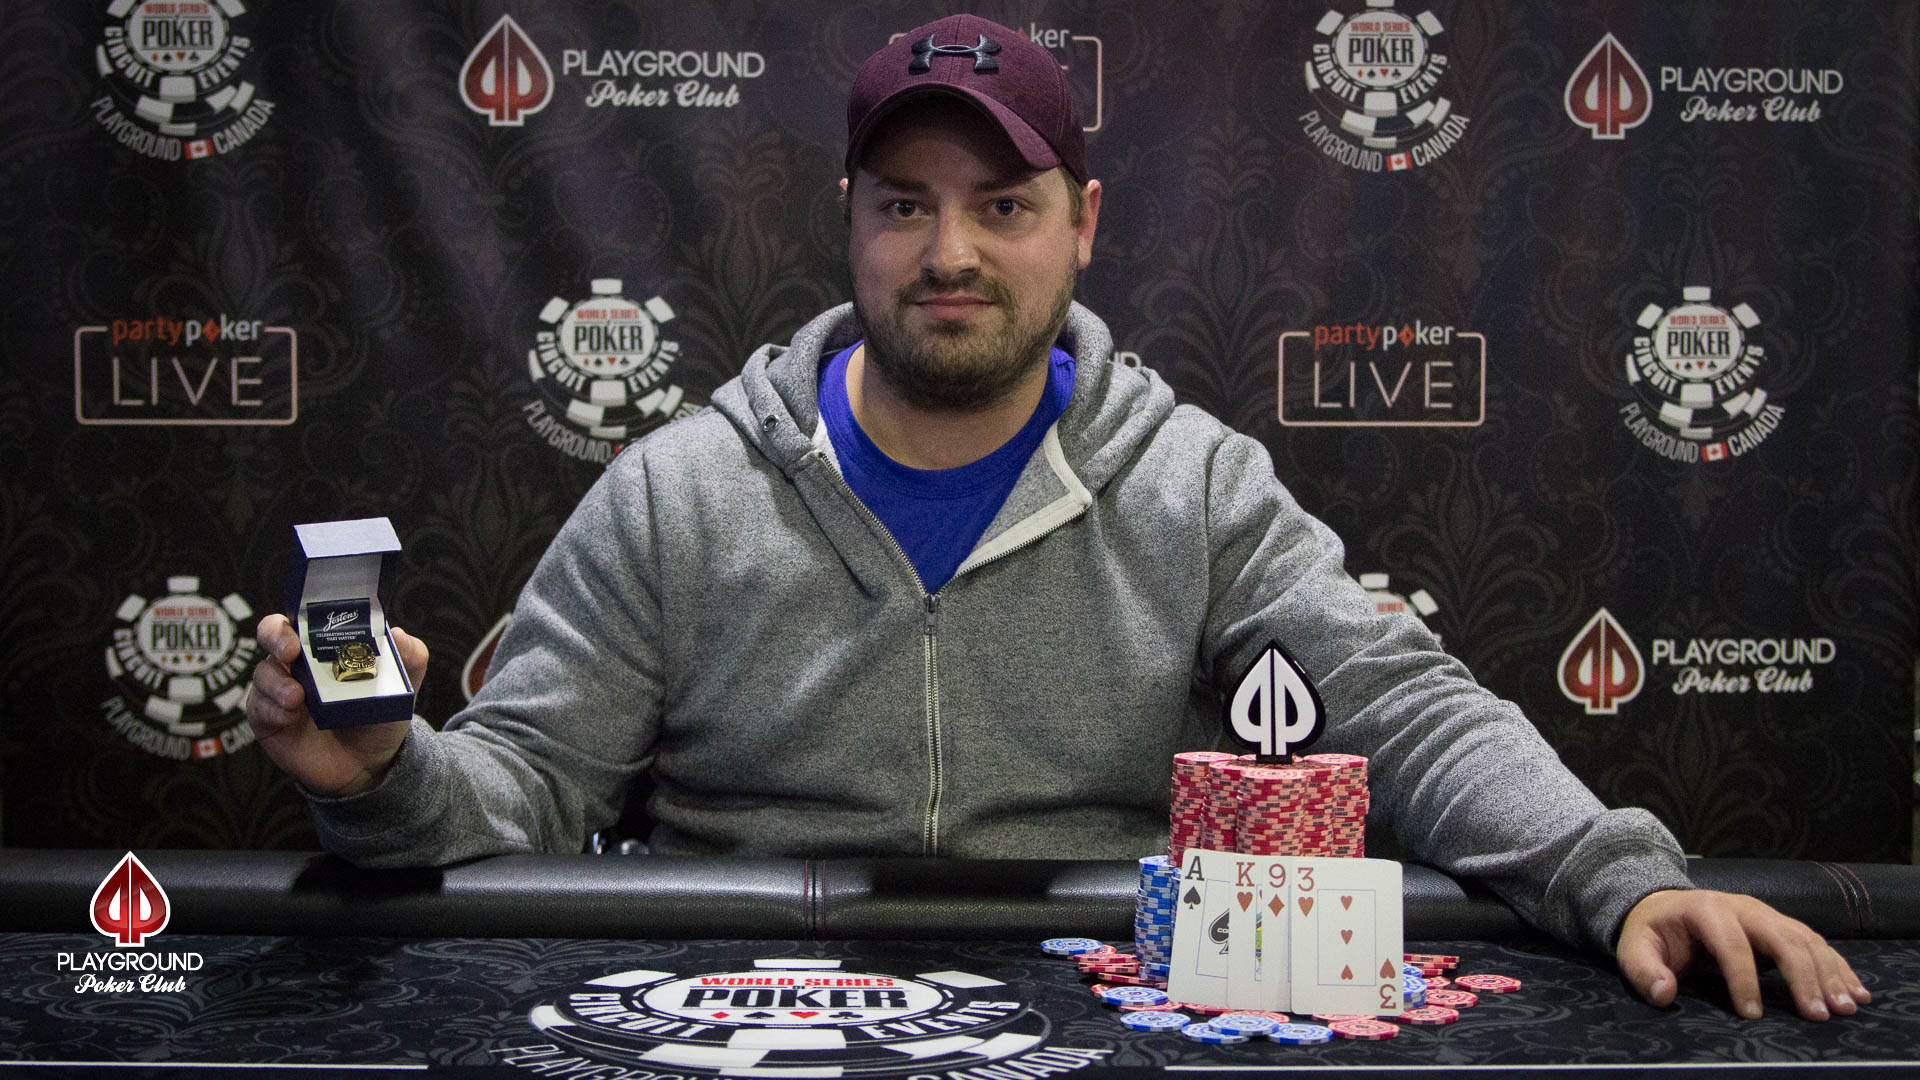 Gino Roland Frenette is the WSOP-C Playground PLO Champion!